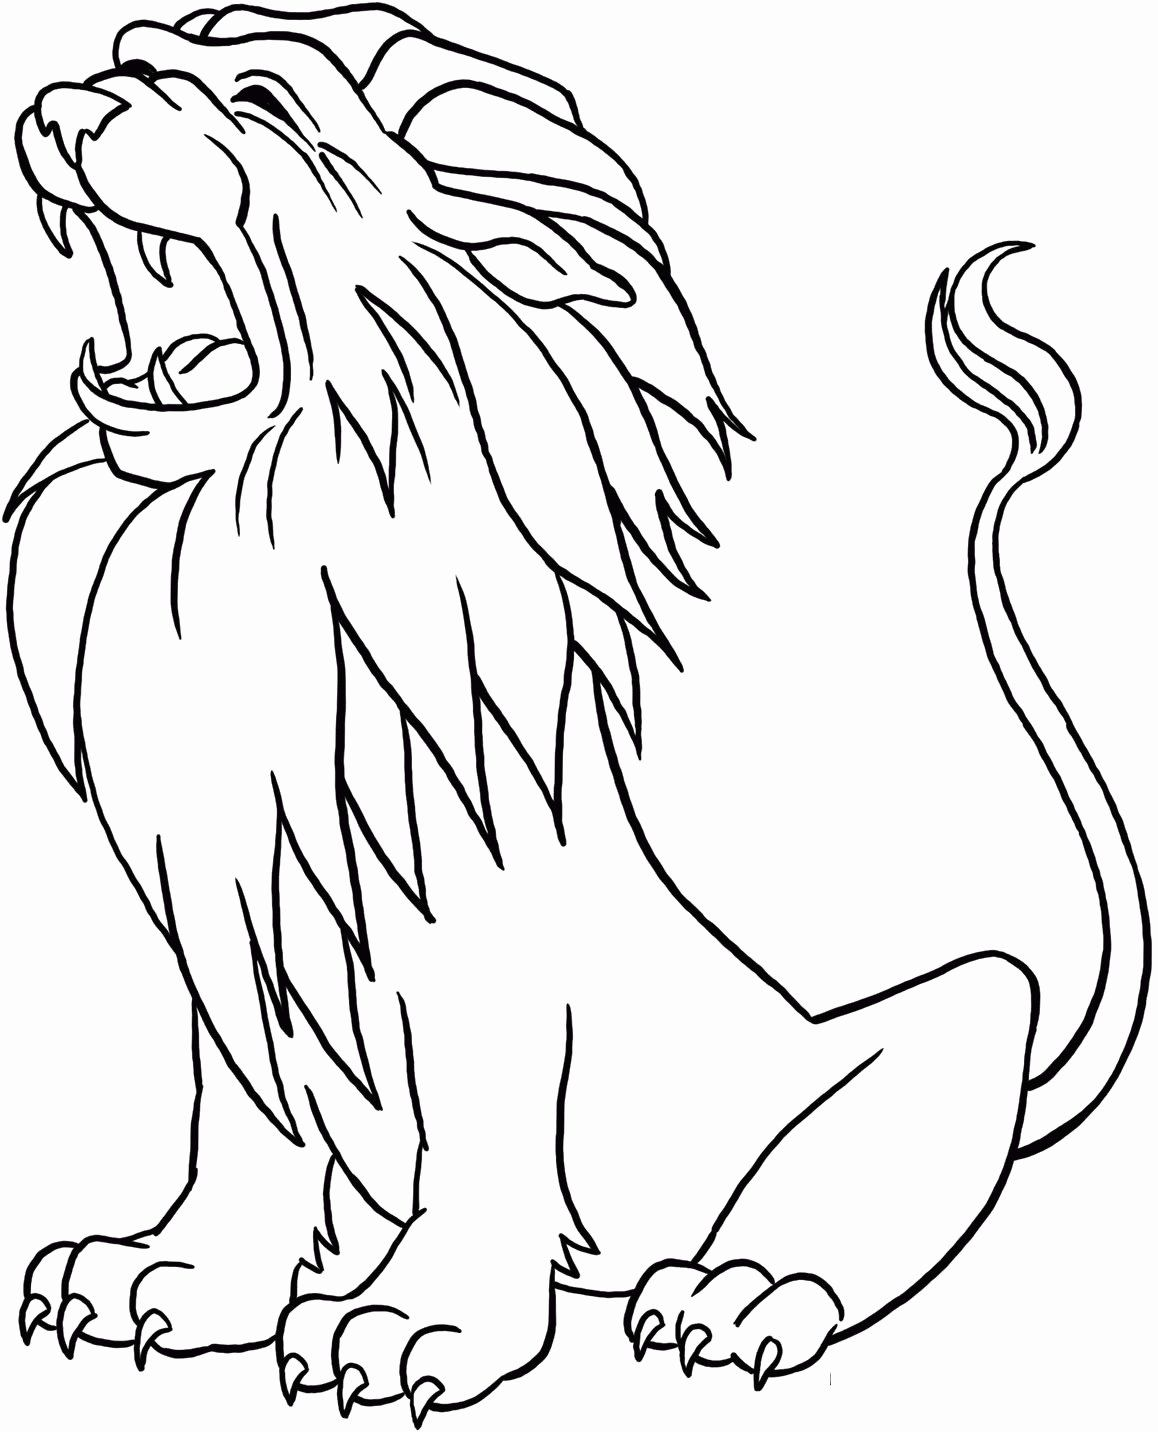 Coloring Picture Of A Lion In 2020 Lion Coloring Pages Animal